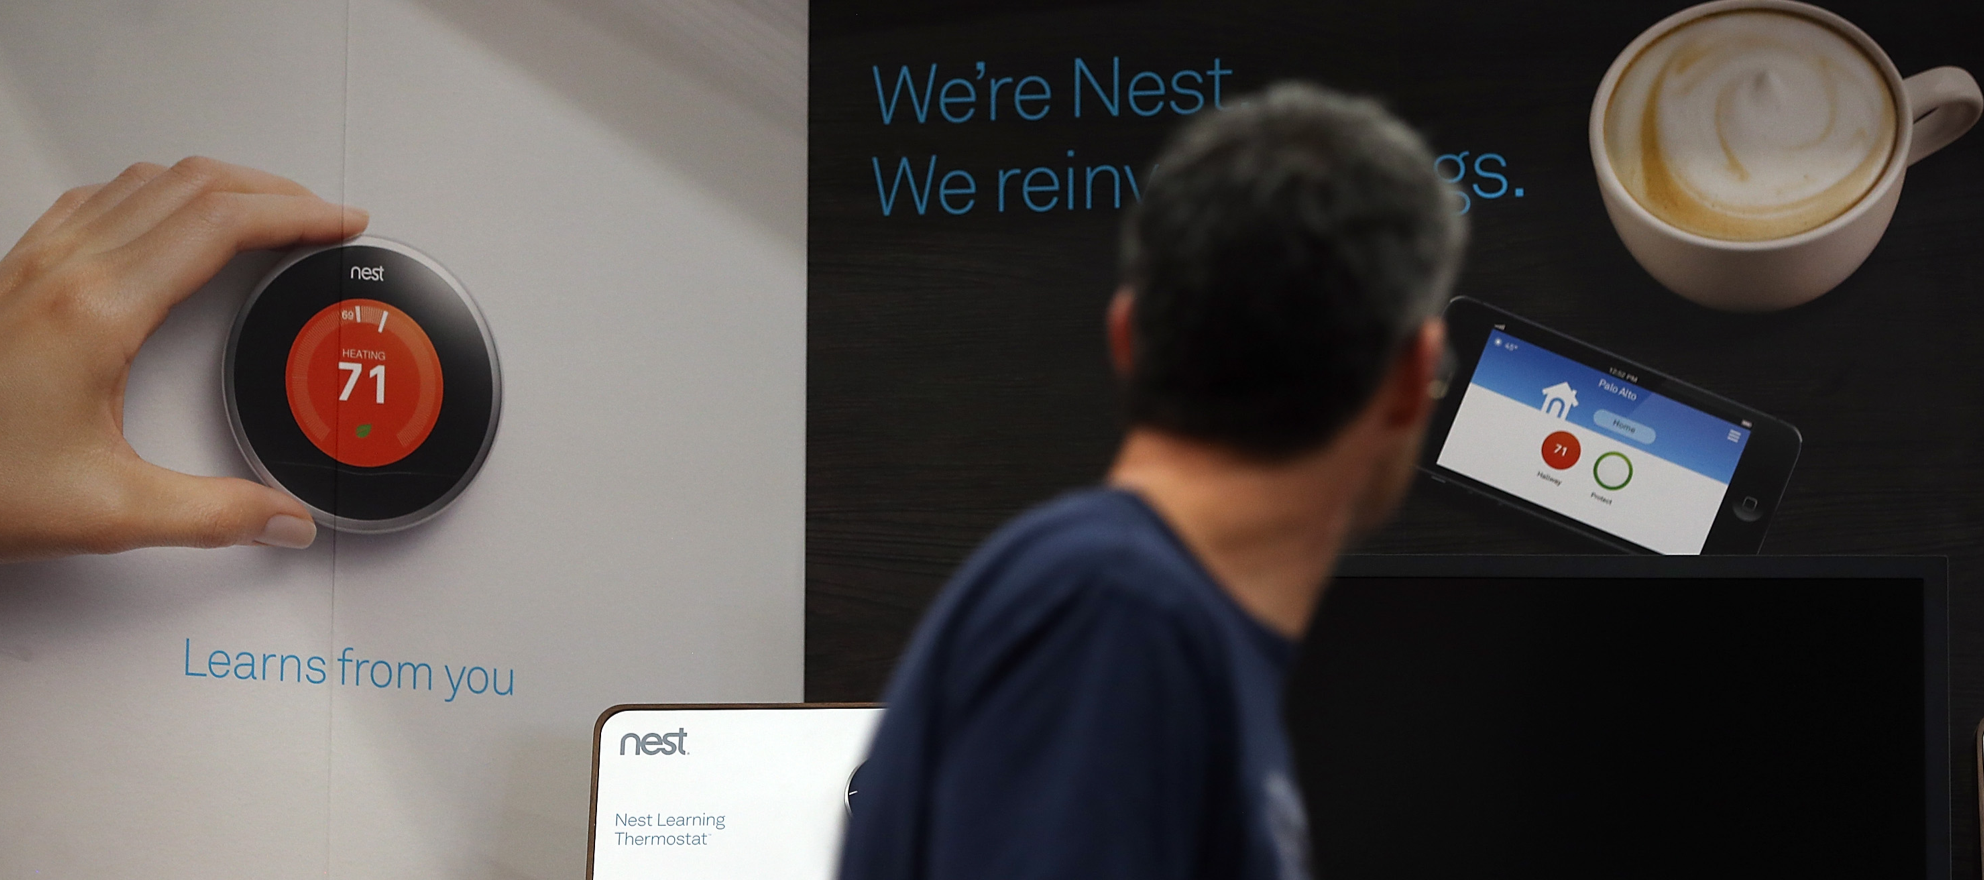 Builders ditching Nest products as Google takes complete control